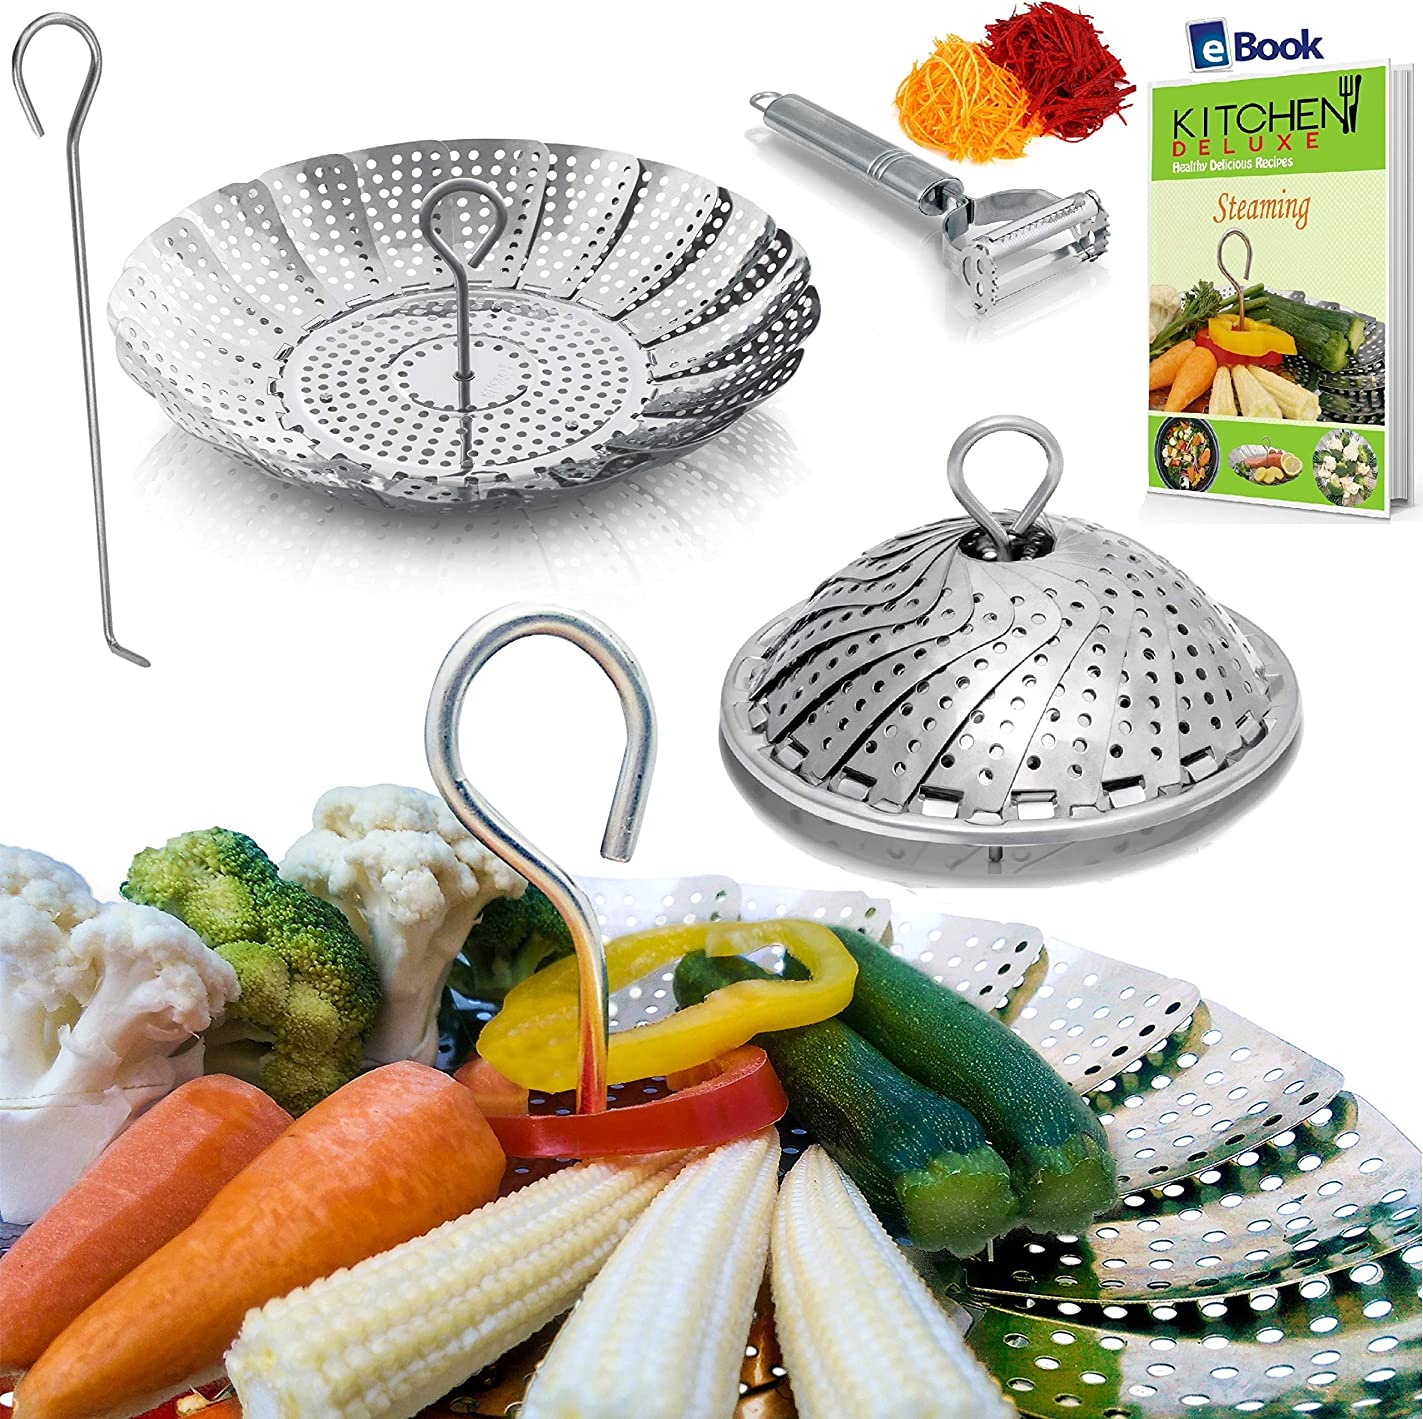 PREMIUM Vegetable Steamer Basket - BEST Bundle - Fits Instant Pot Pressure Cooker 3, 5, 6 Qt & 8 Quart - 100% Stainless Steel - BONUS Accessories - Safety Tool + eBook + Peeler - Insert for Instapot